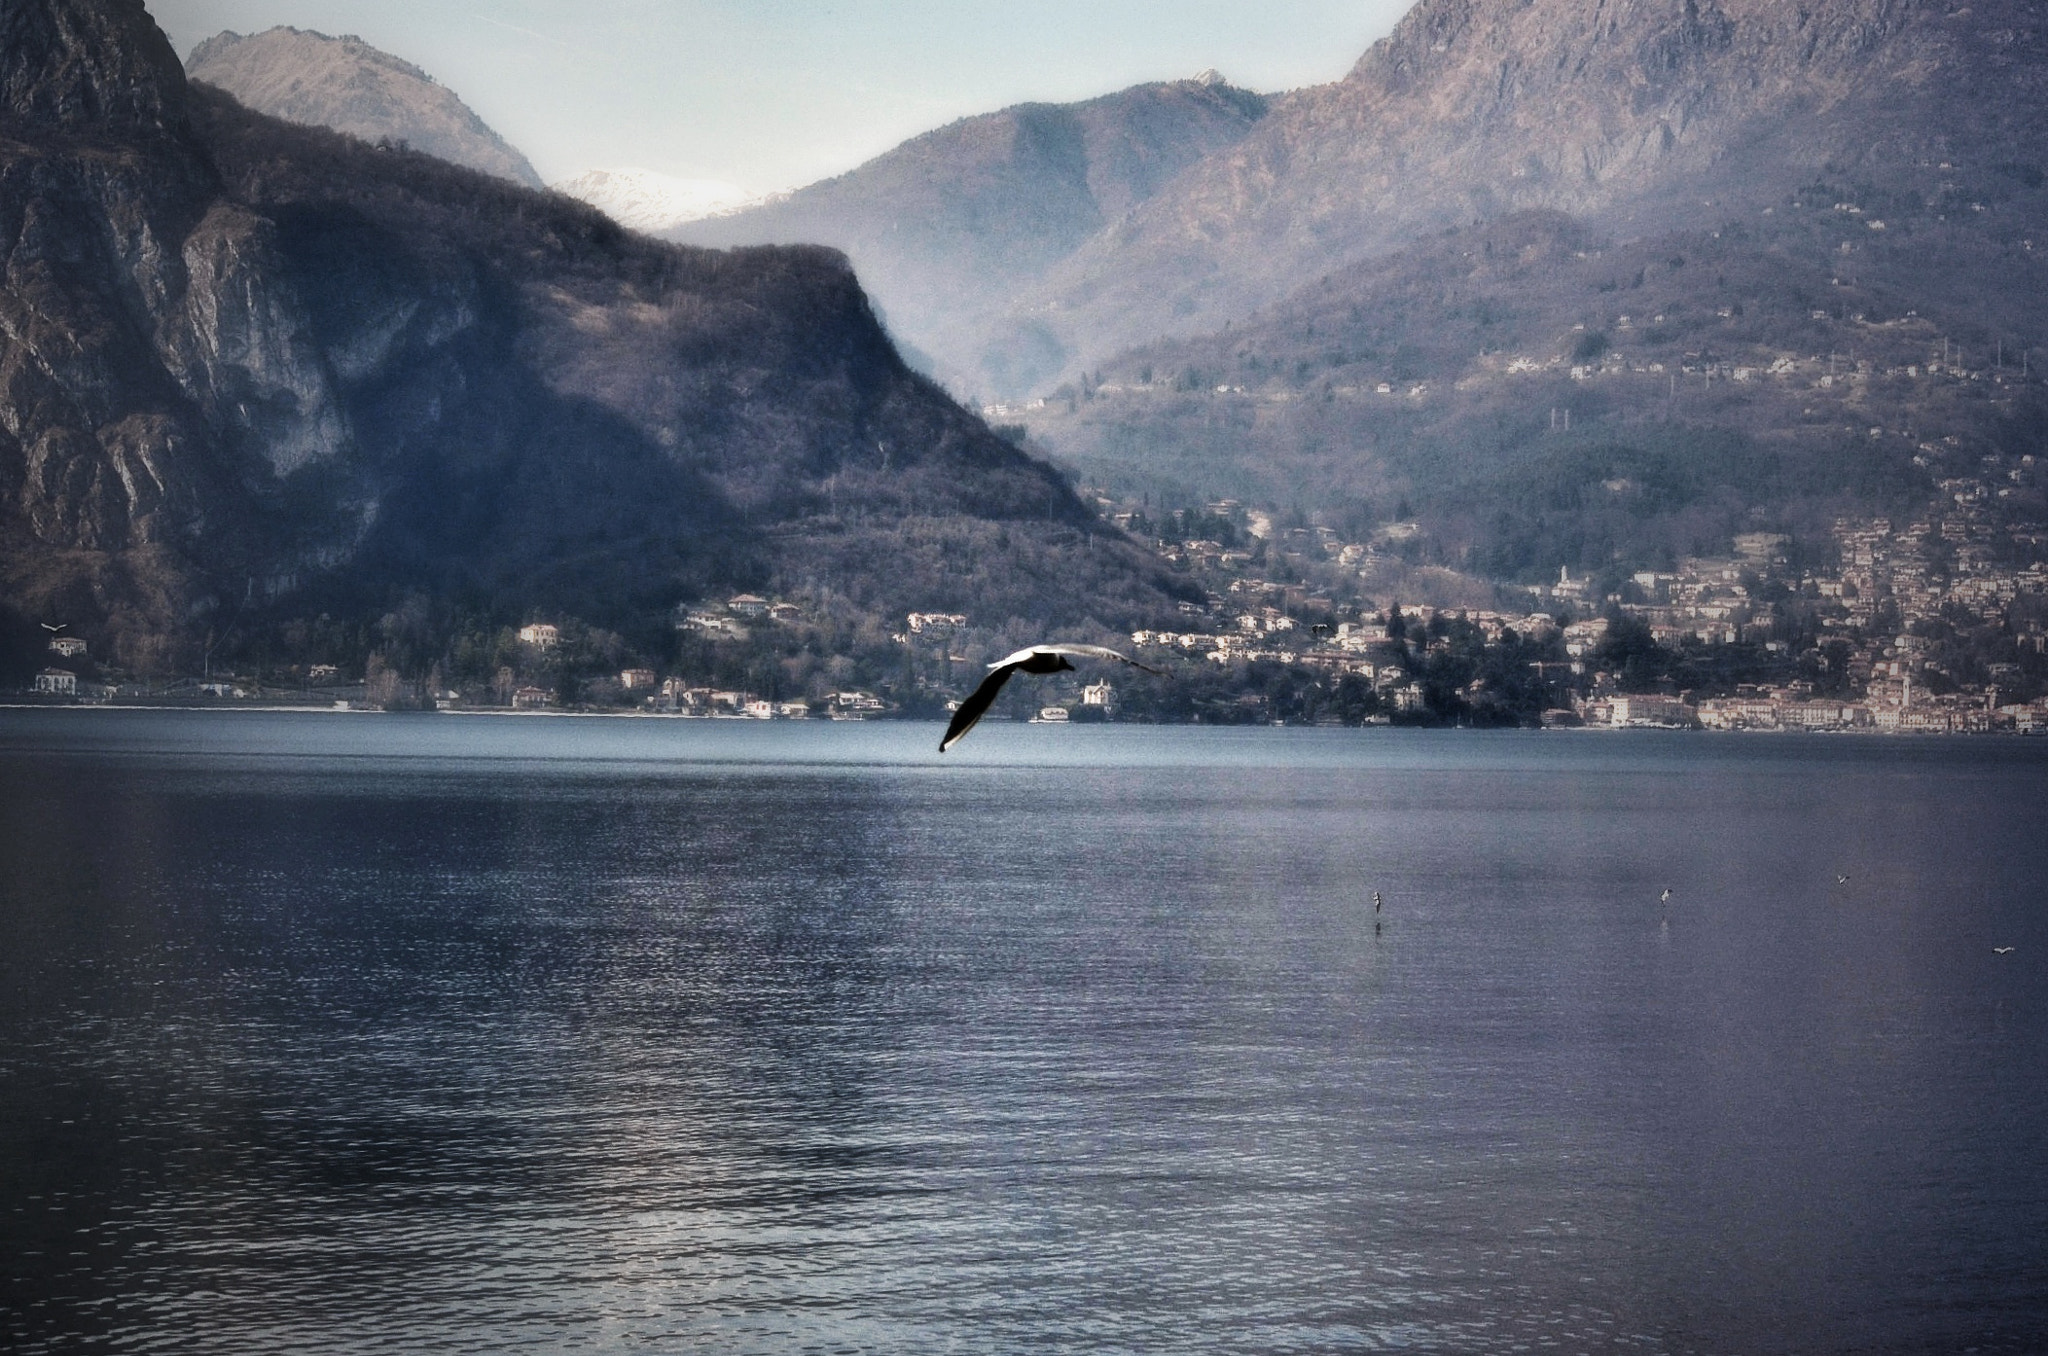 Photograph Fly away by Silvia Peschiera on 500px